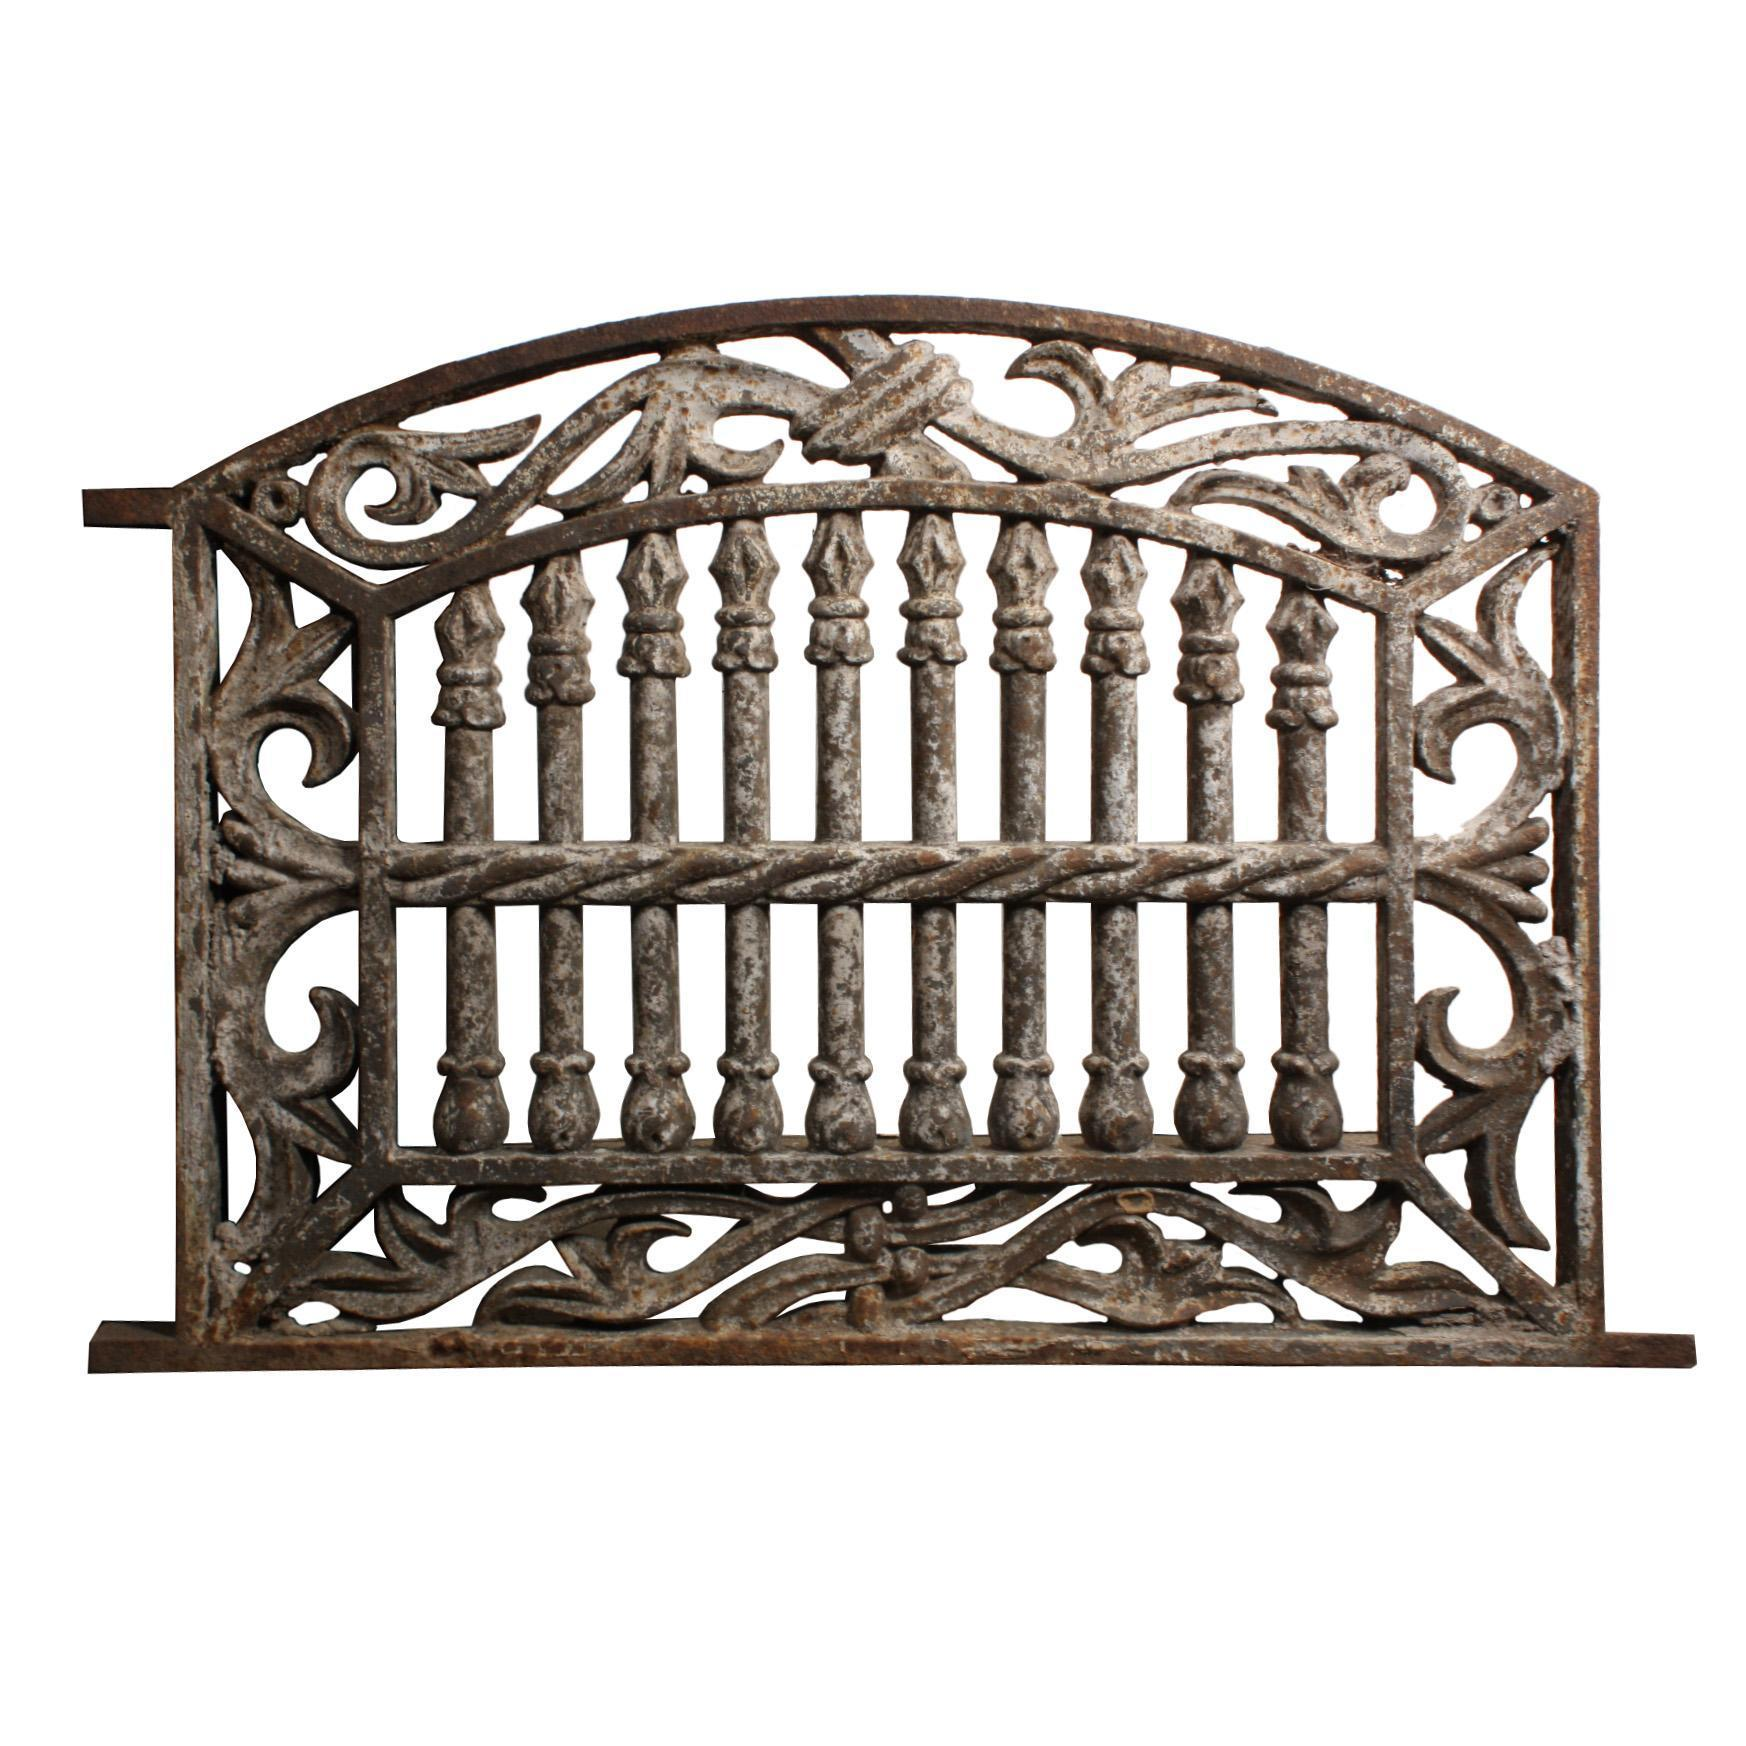 Antique Arched Cast Iron Foundation Grate, Early 1900s